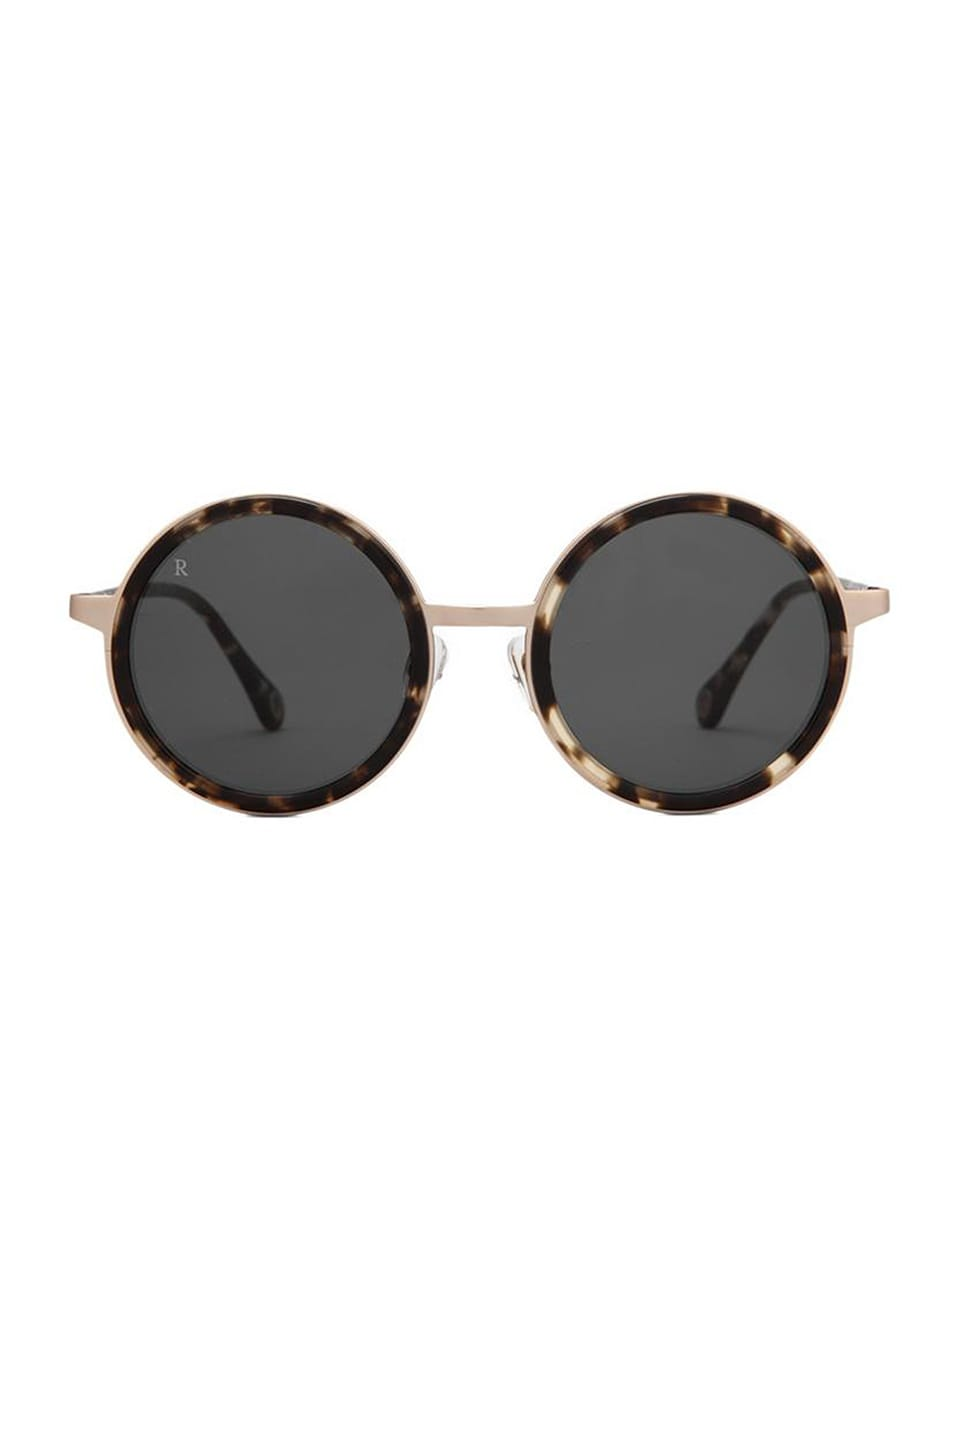 RAEN Fairbank Sunglasses in Brindle Tortoise